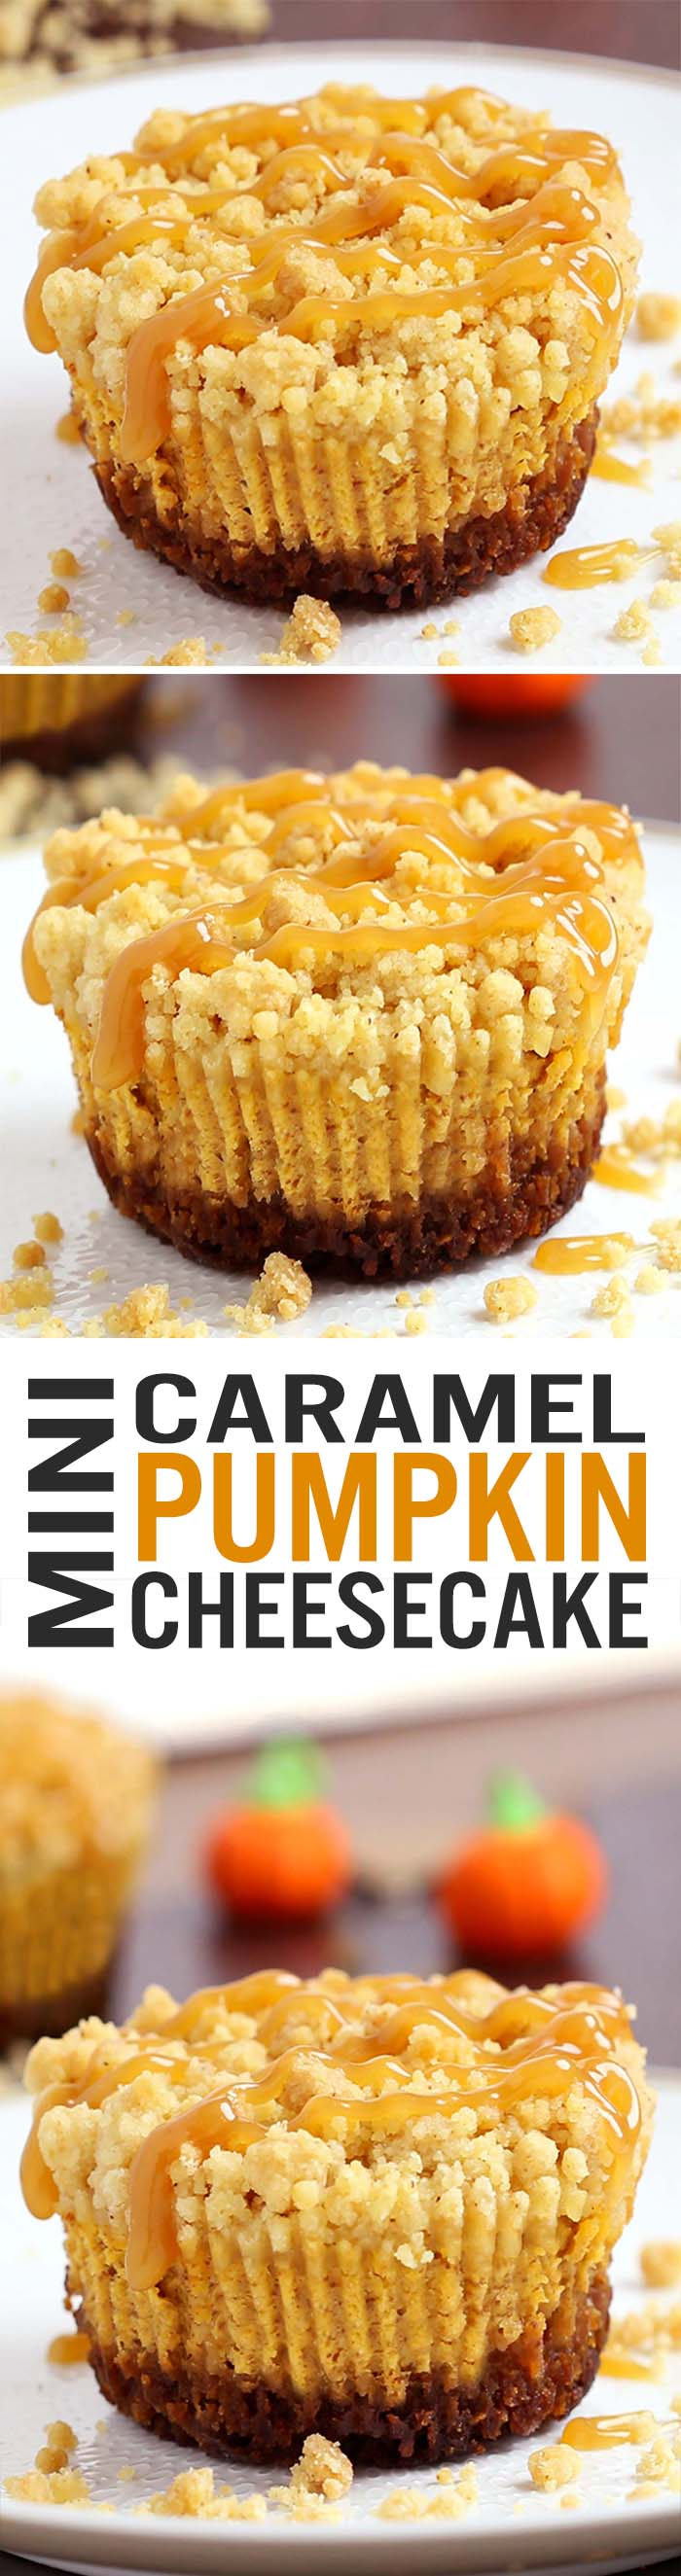 Caramel Pumpkin Mini Cheesecakes with Streusel Topping  are what pumpkin dessert dreams are made of! A irresistible gingersnap cookie crust with a rich, smooth, creamy pumpkin cheesecake filling, topped with crunchy, sweet, buttery streusel and caramel sauce.